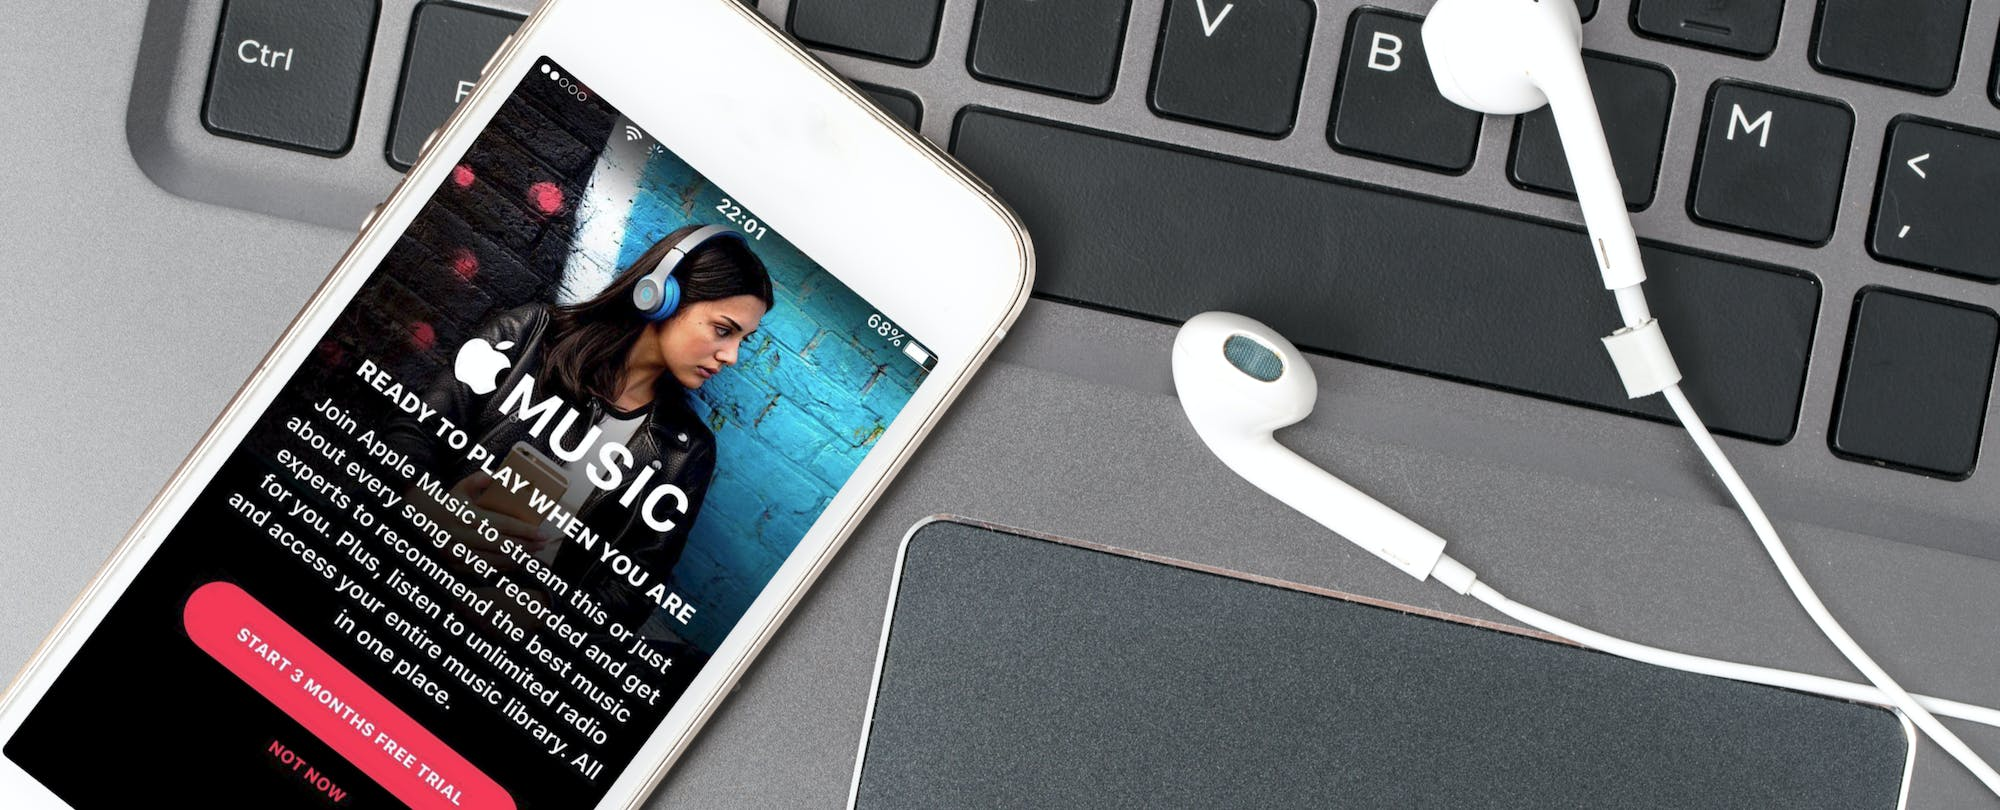 Why an iTunes Model for Online Learning Is Bad for Educators